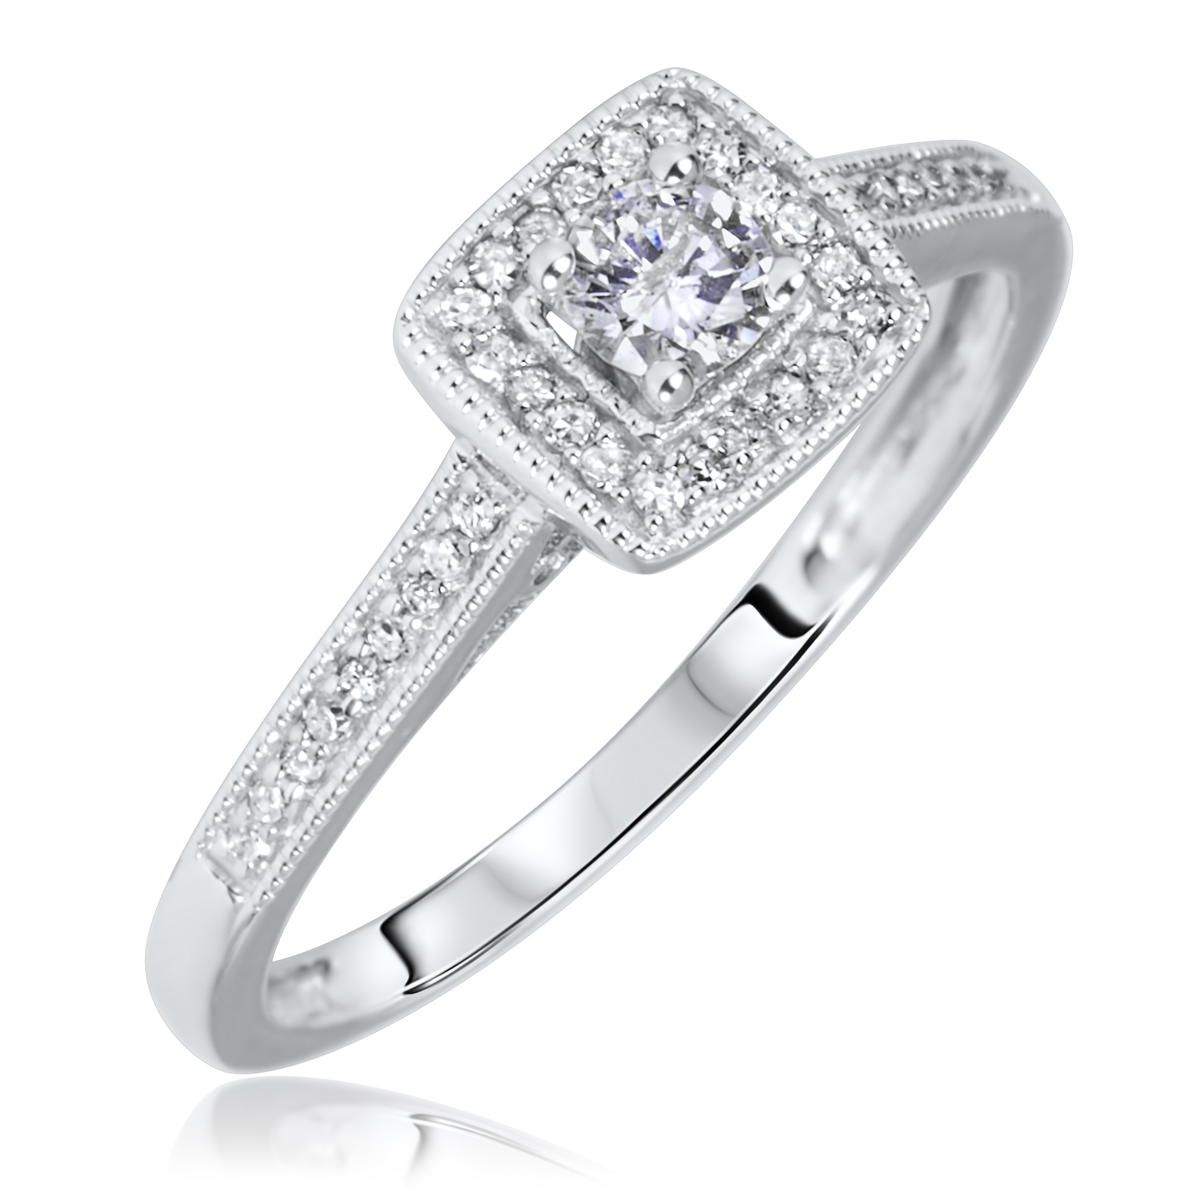 5 Carat Tw Round Cut Diamond Ladies Engagement Ring 10k White Gold  My  Trio Rings  Bt572w10ke